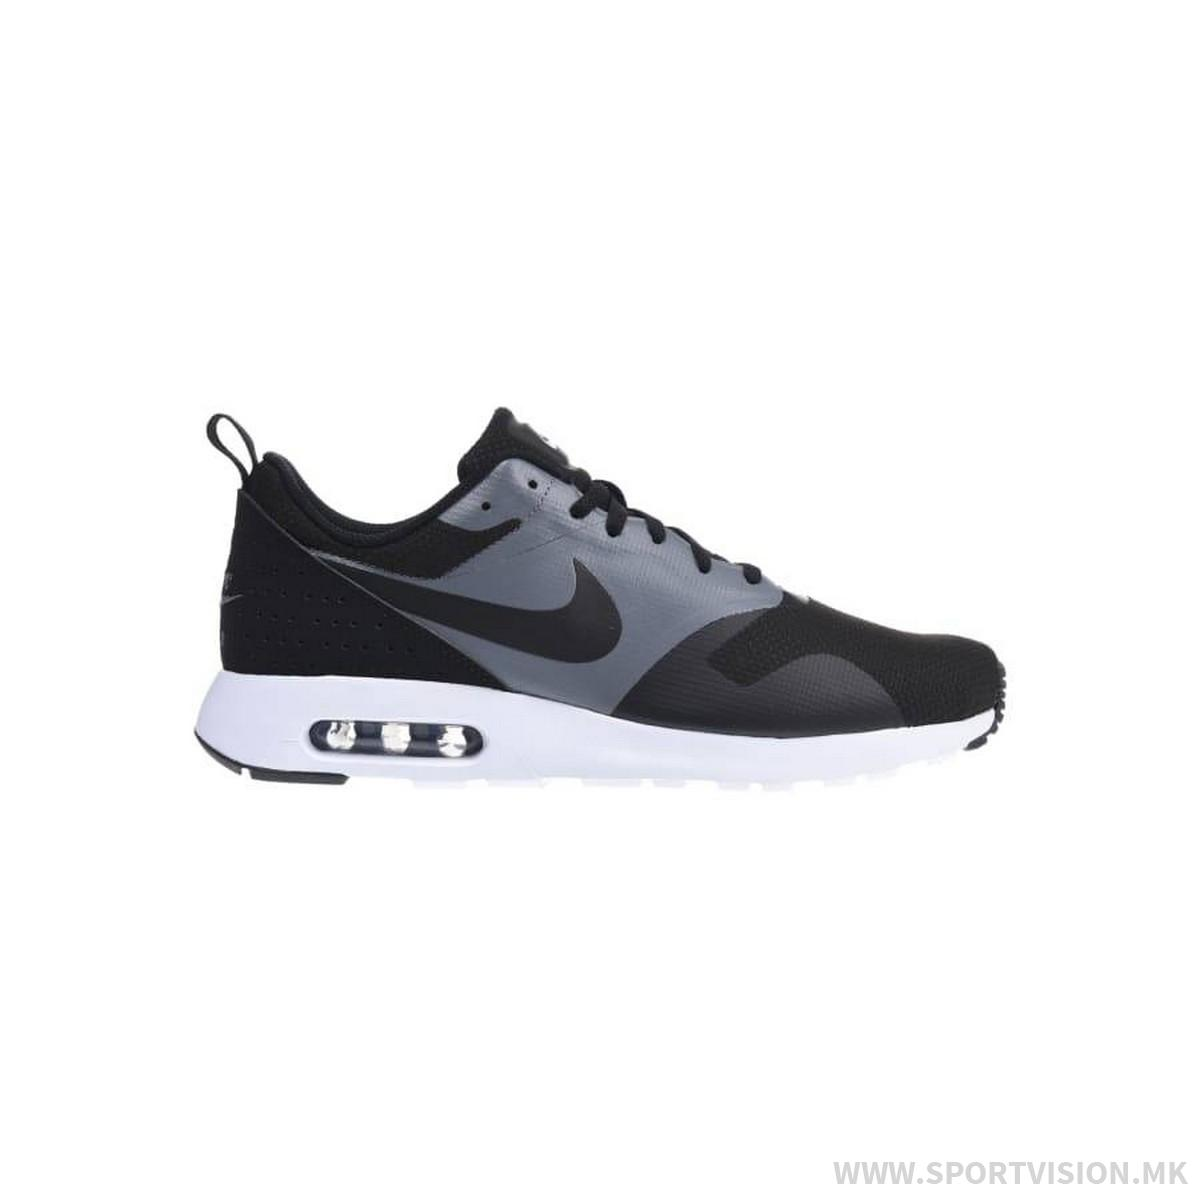 MEN'S NIKE AIR MAX TAVAS SPECIAL EDITION SHOE